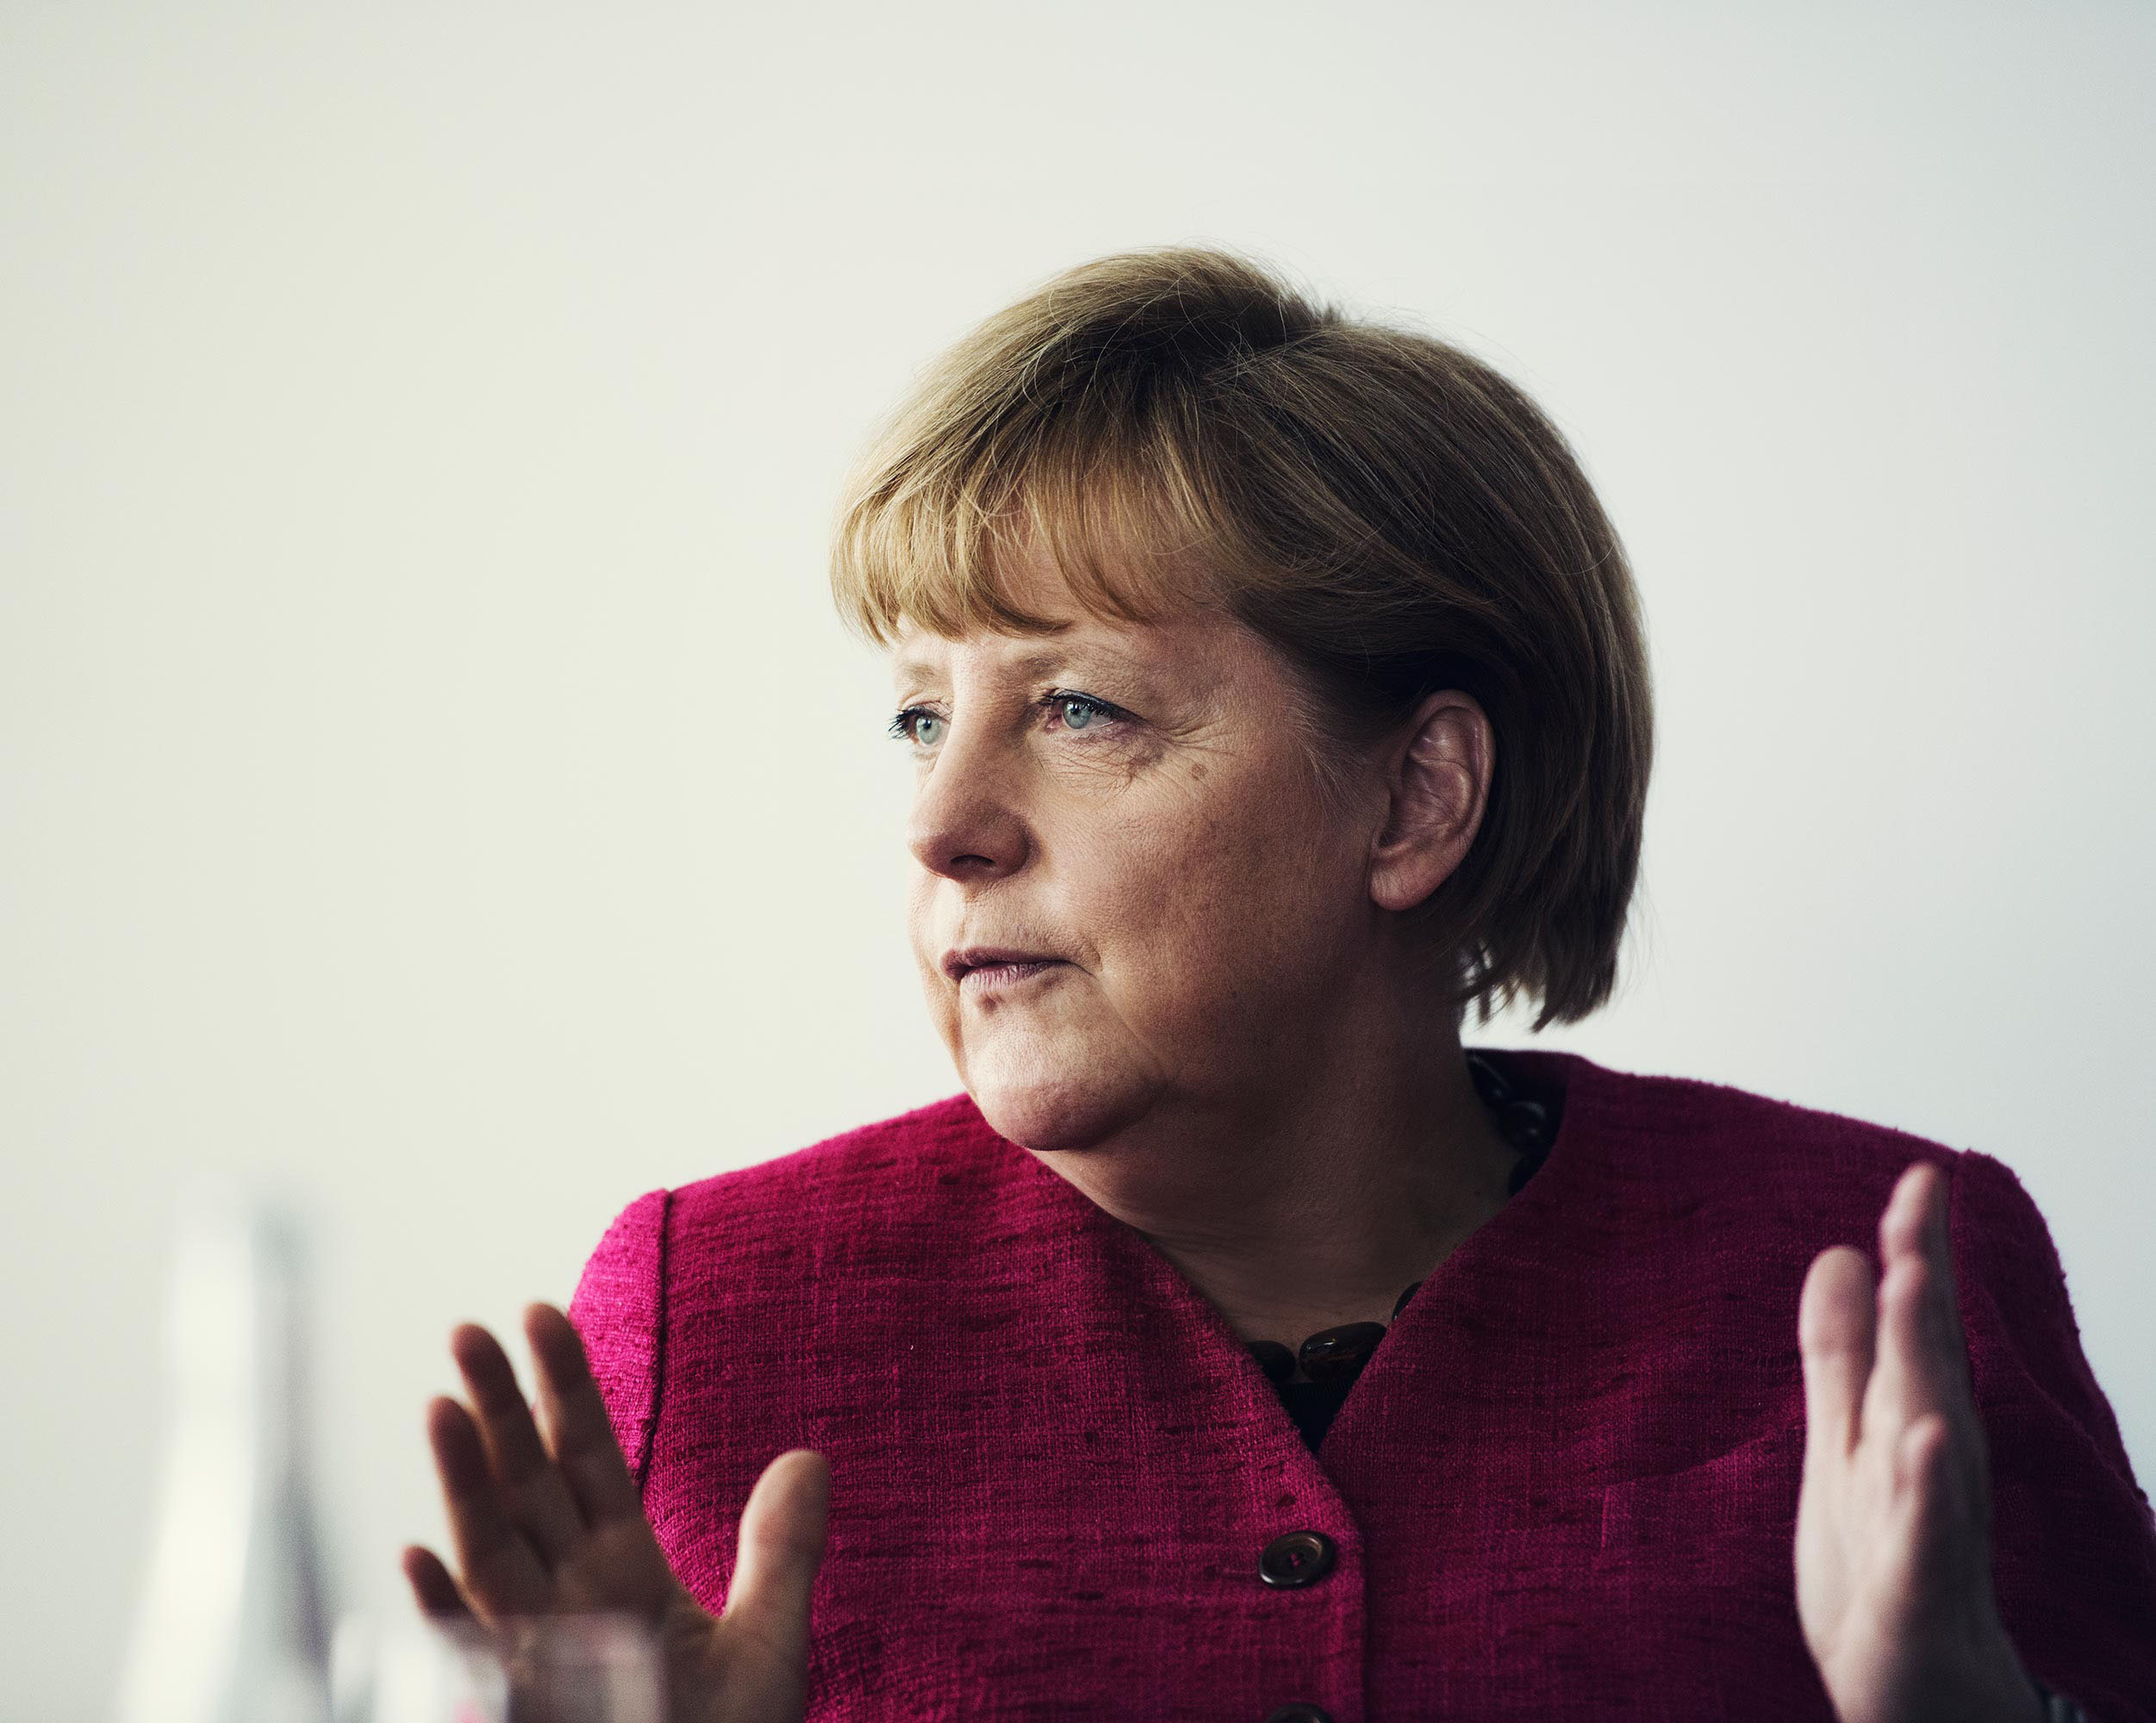 urban zintel photography — angela merkel I